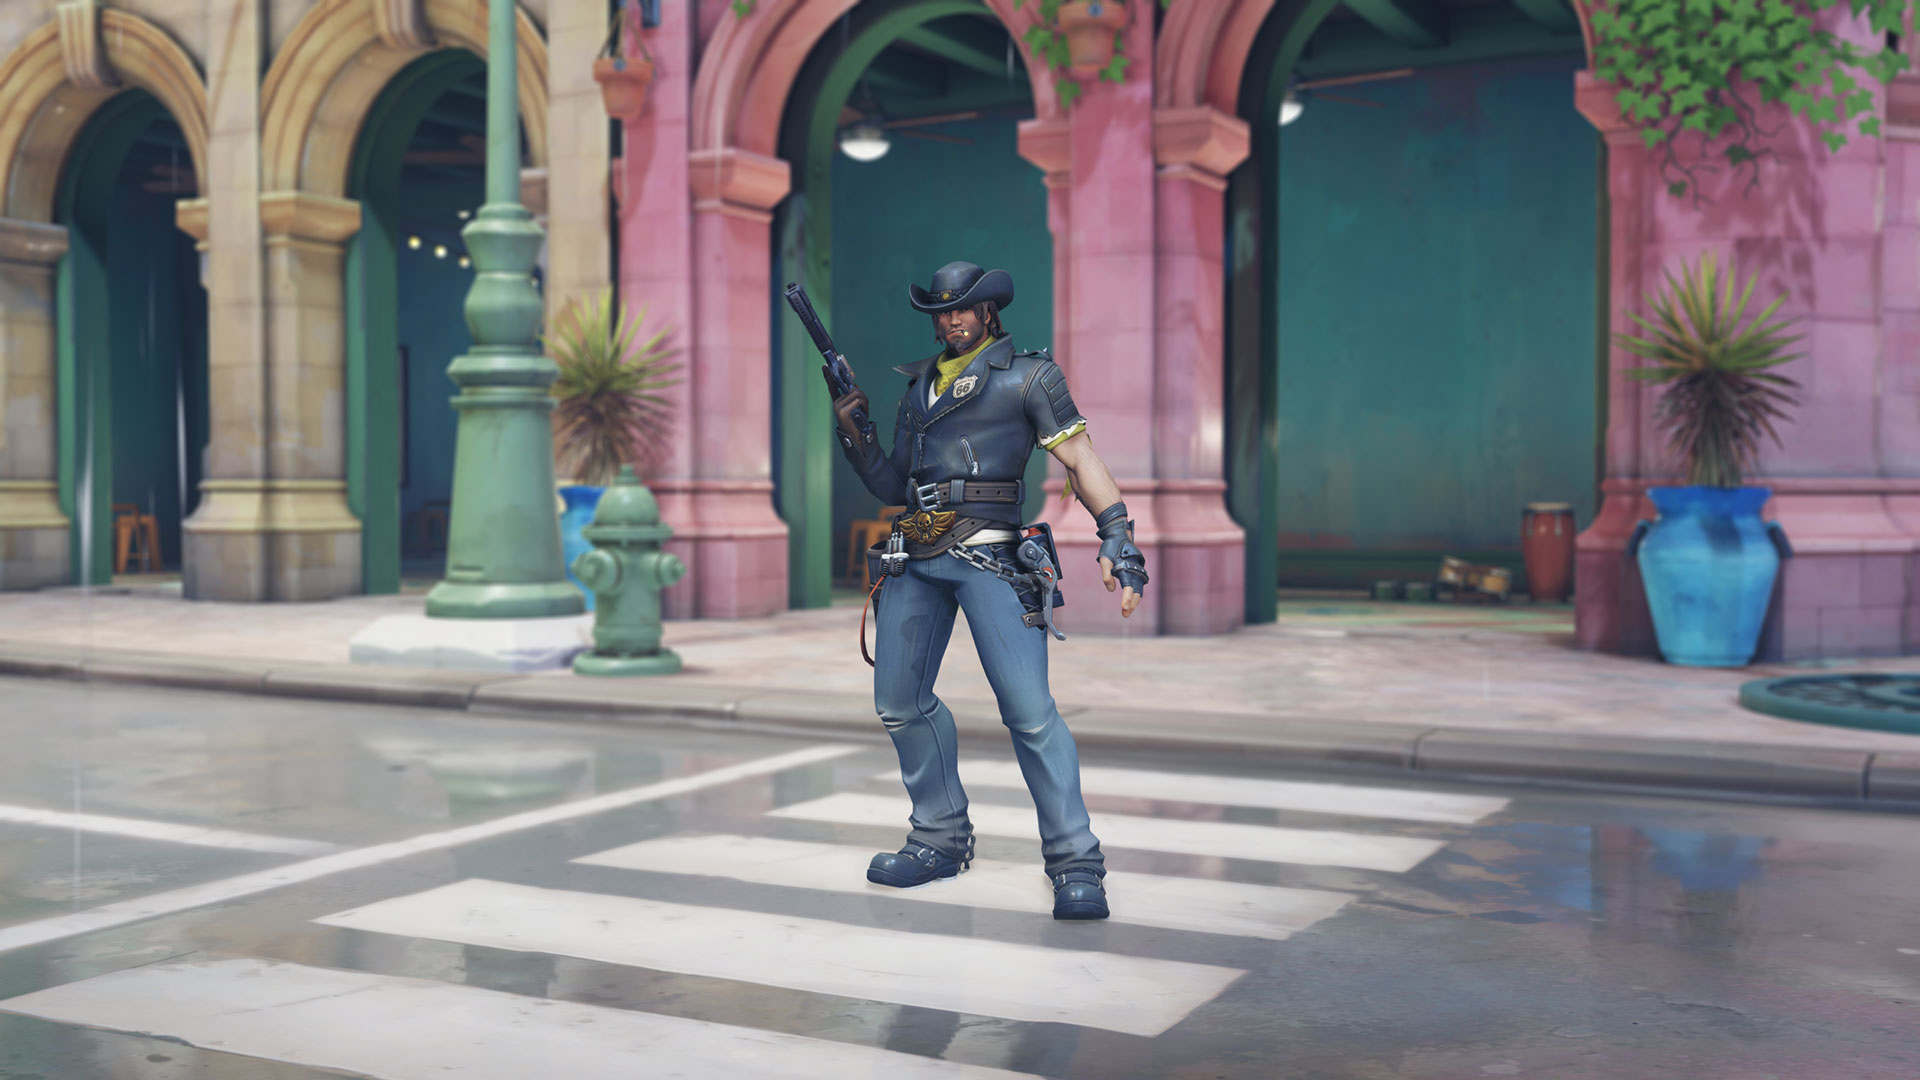 Deadlock McCree skin